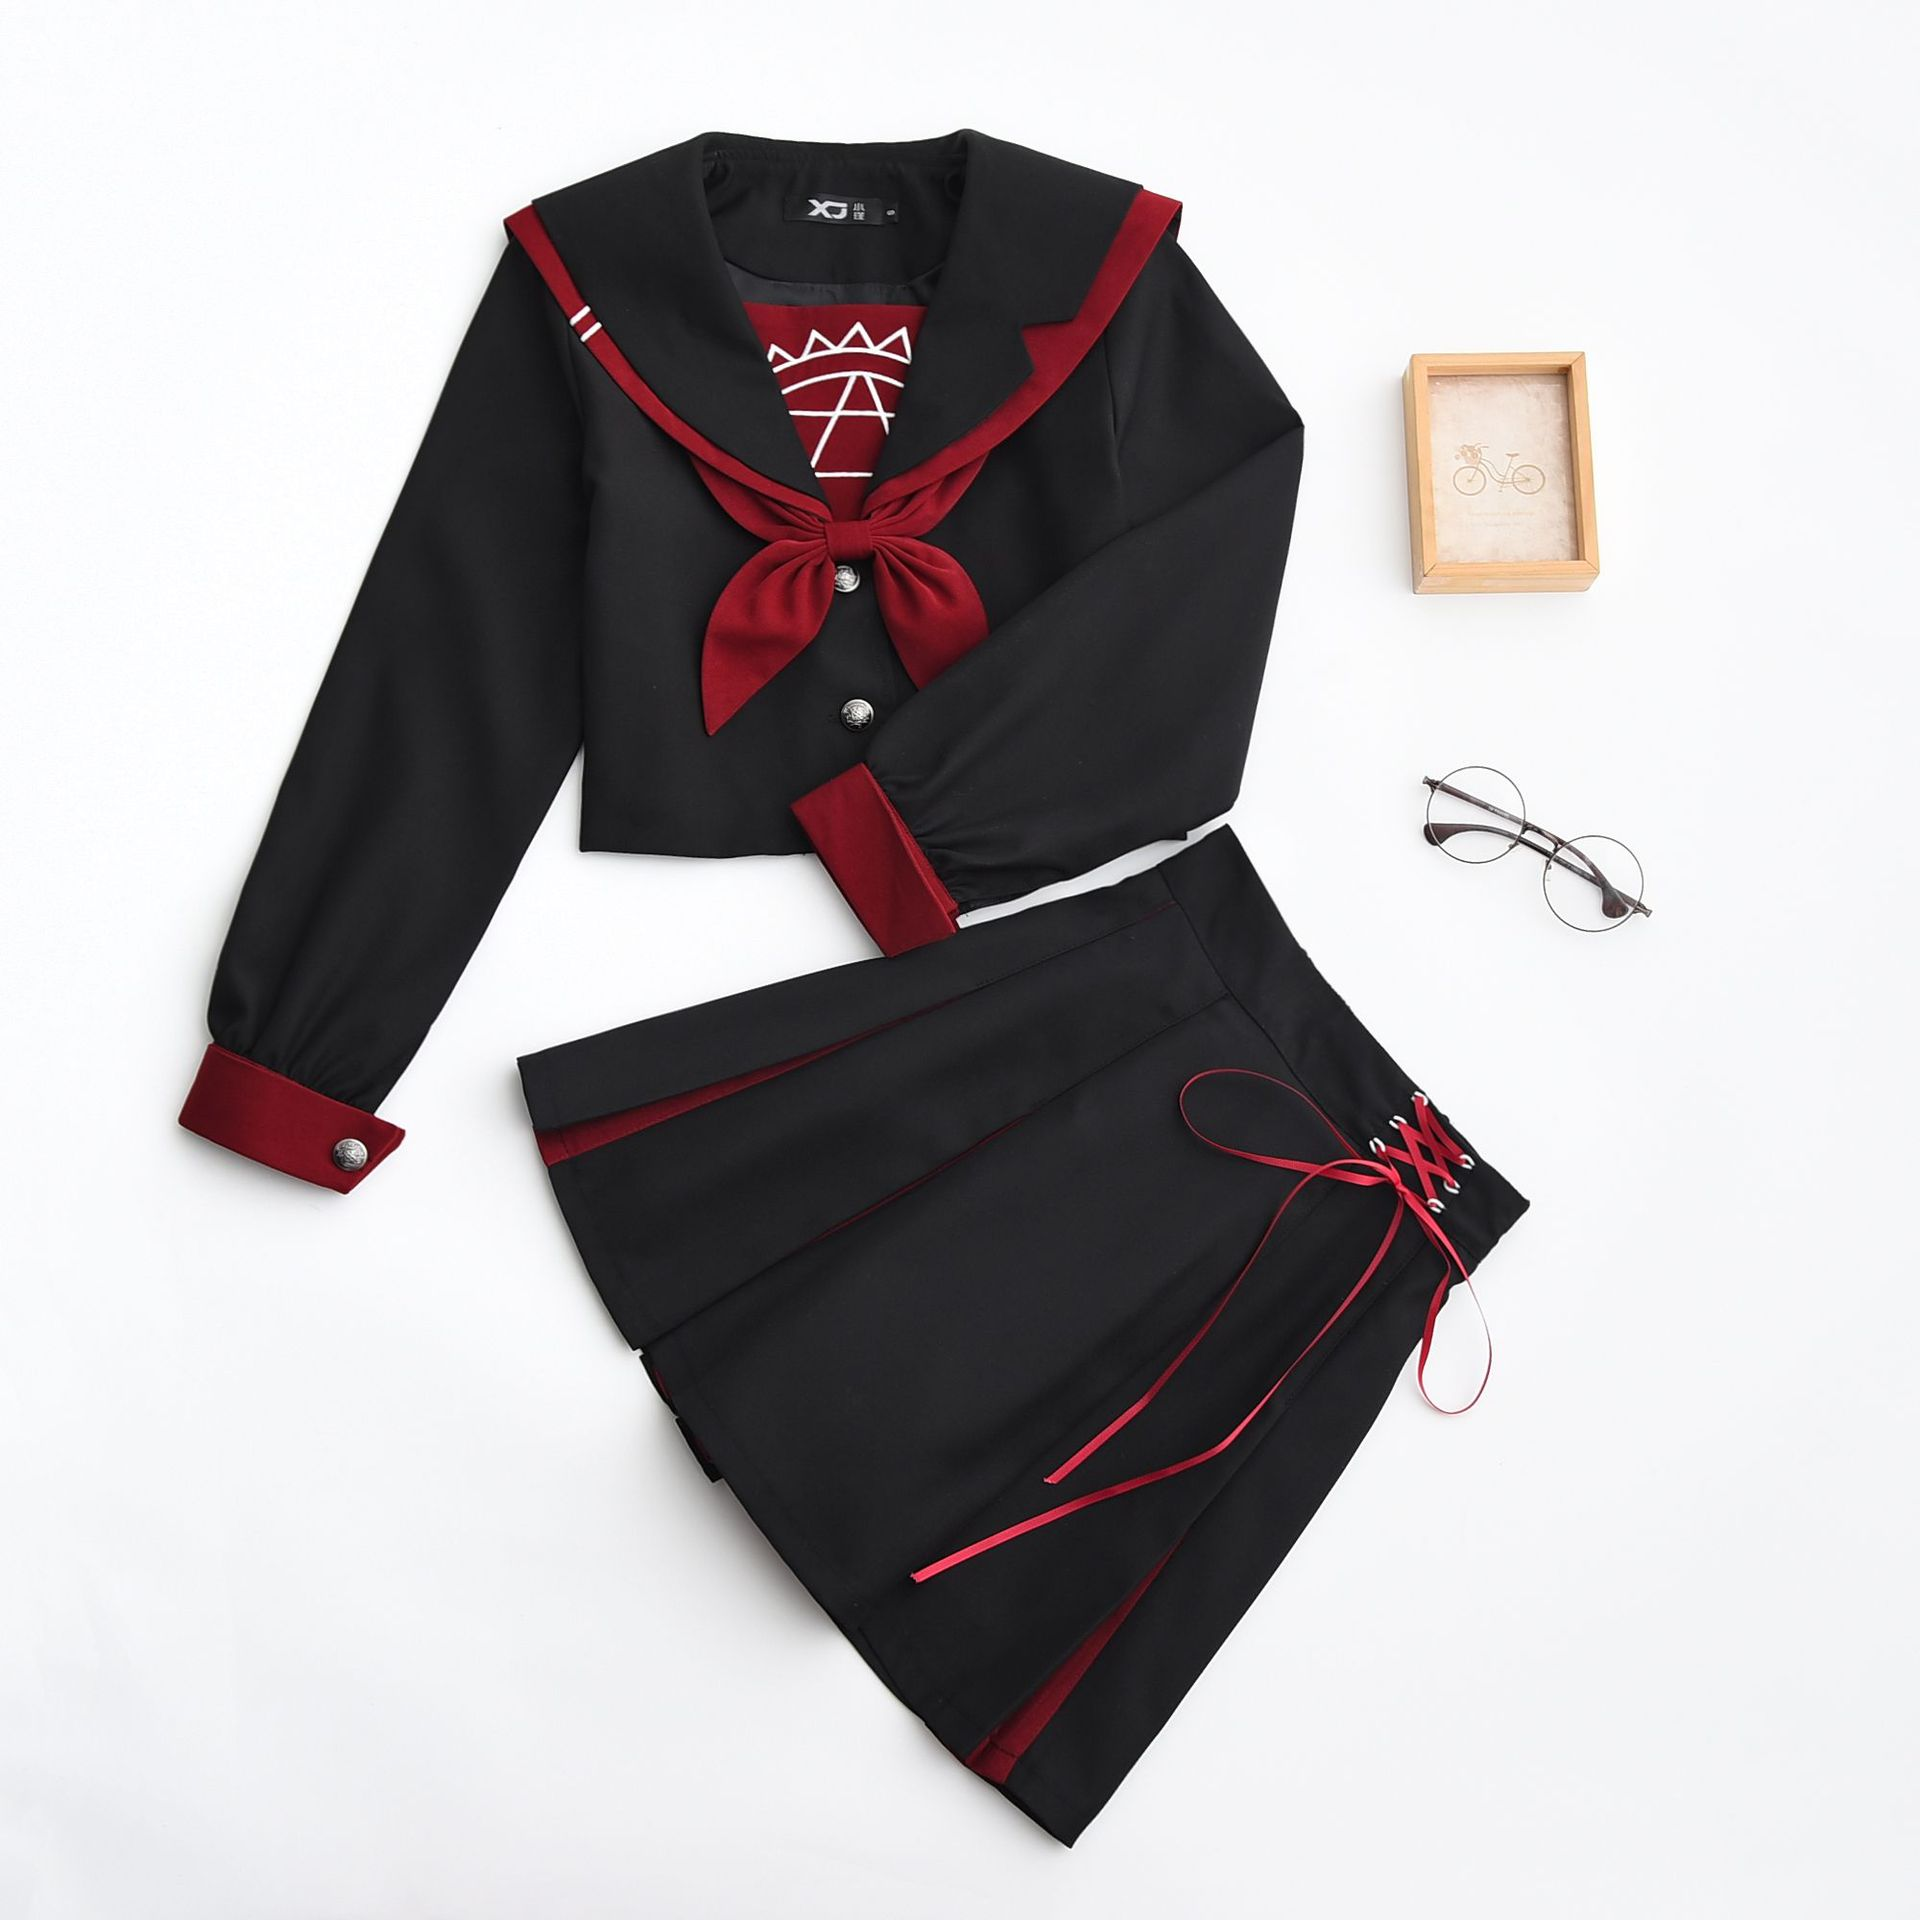 New School Uniforms For Girls Magic Array Embroidery Student Suit Long Sleeved Japanese Cosplay Jk College Sailor Uniform Girl-in School Uniforms from Novelty & Special Use    1